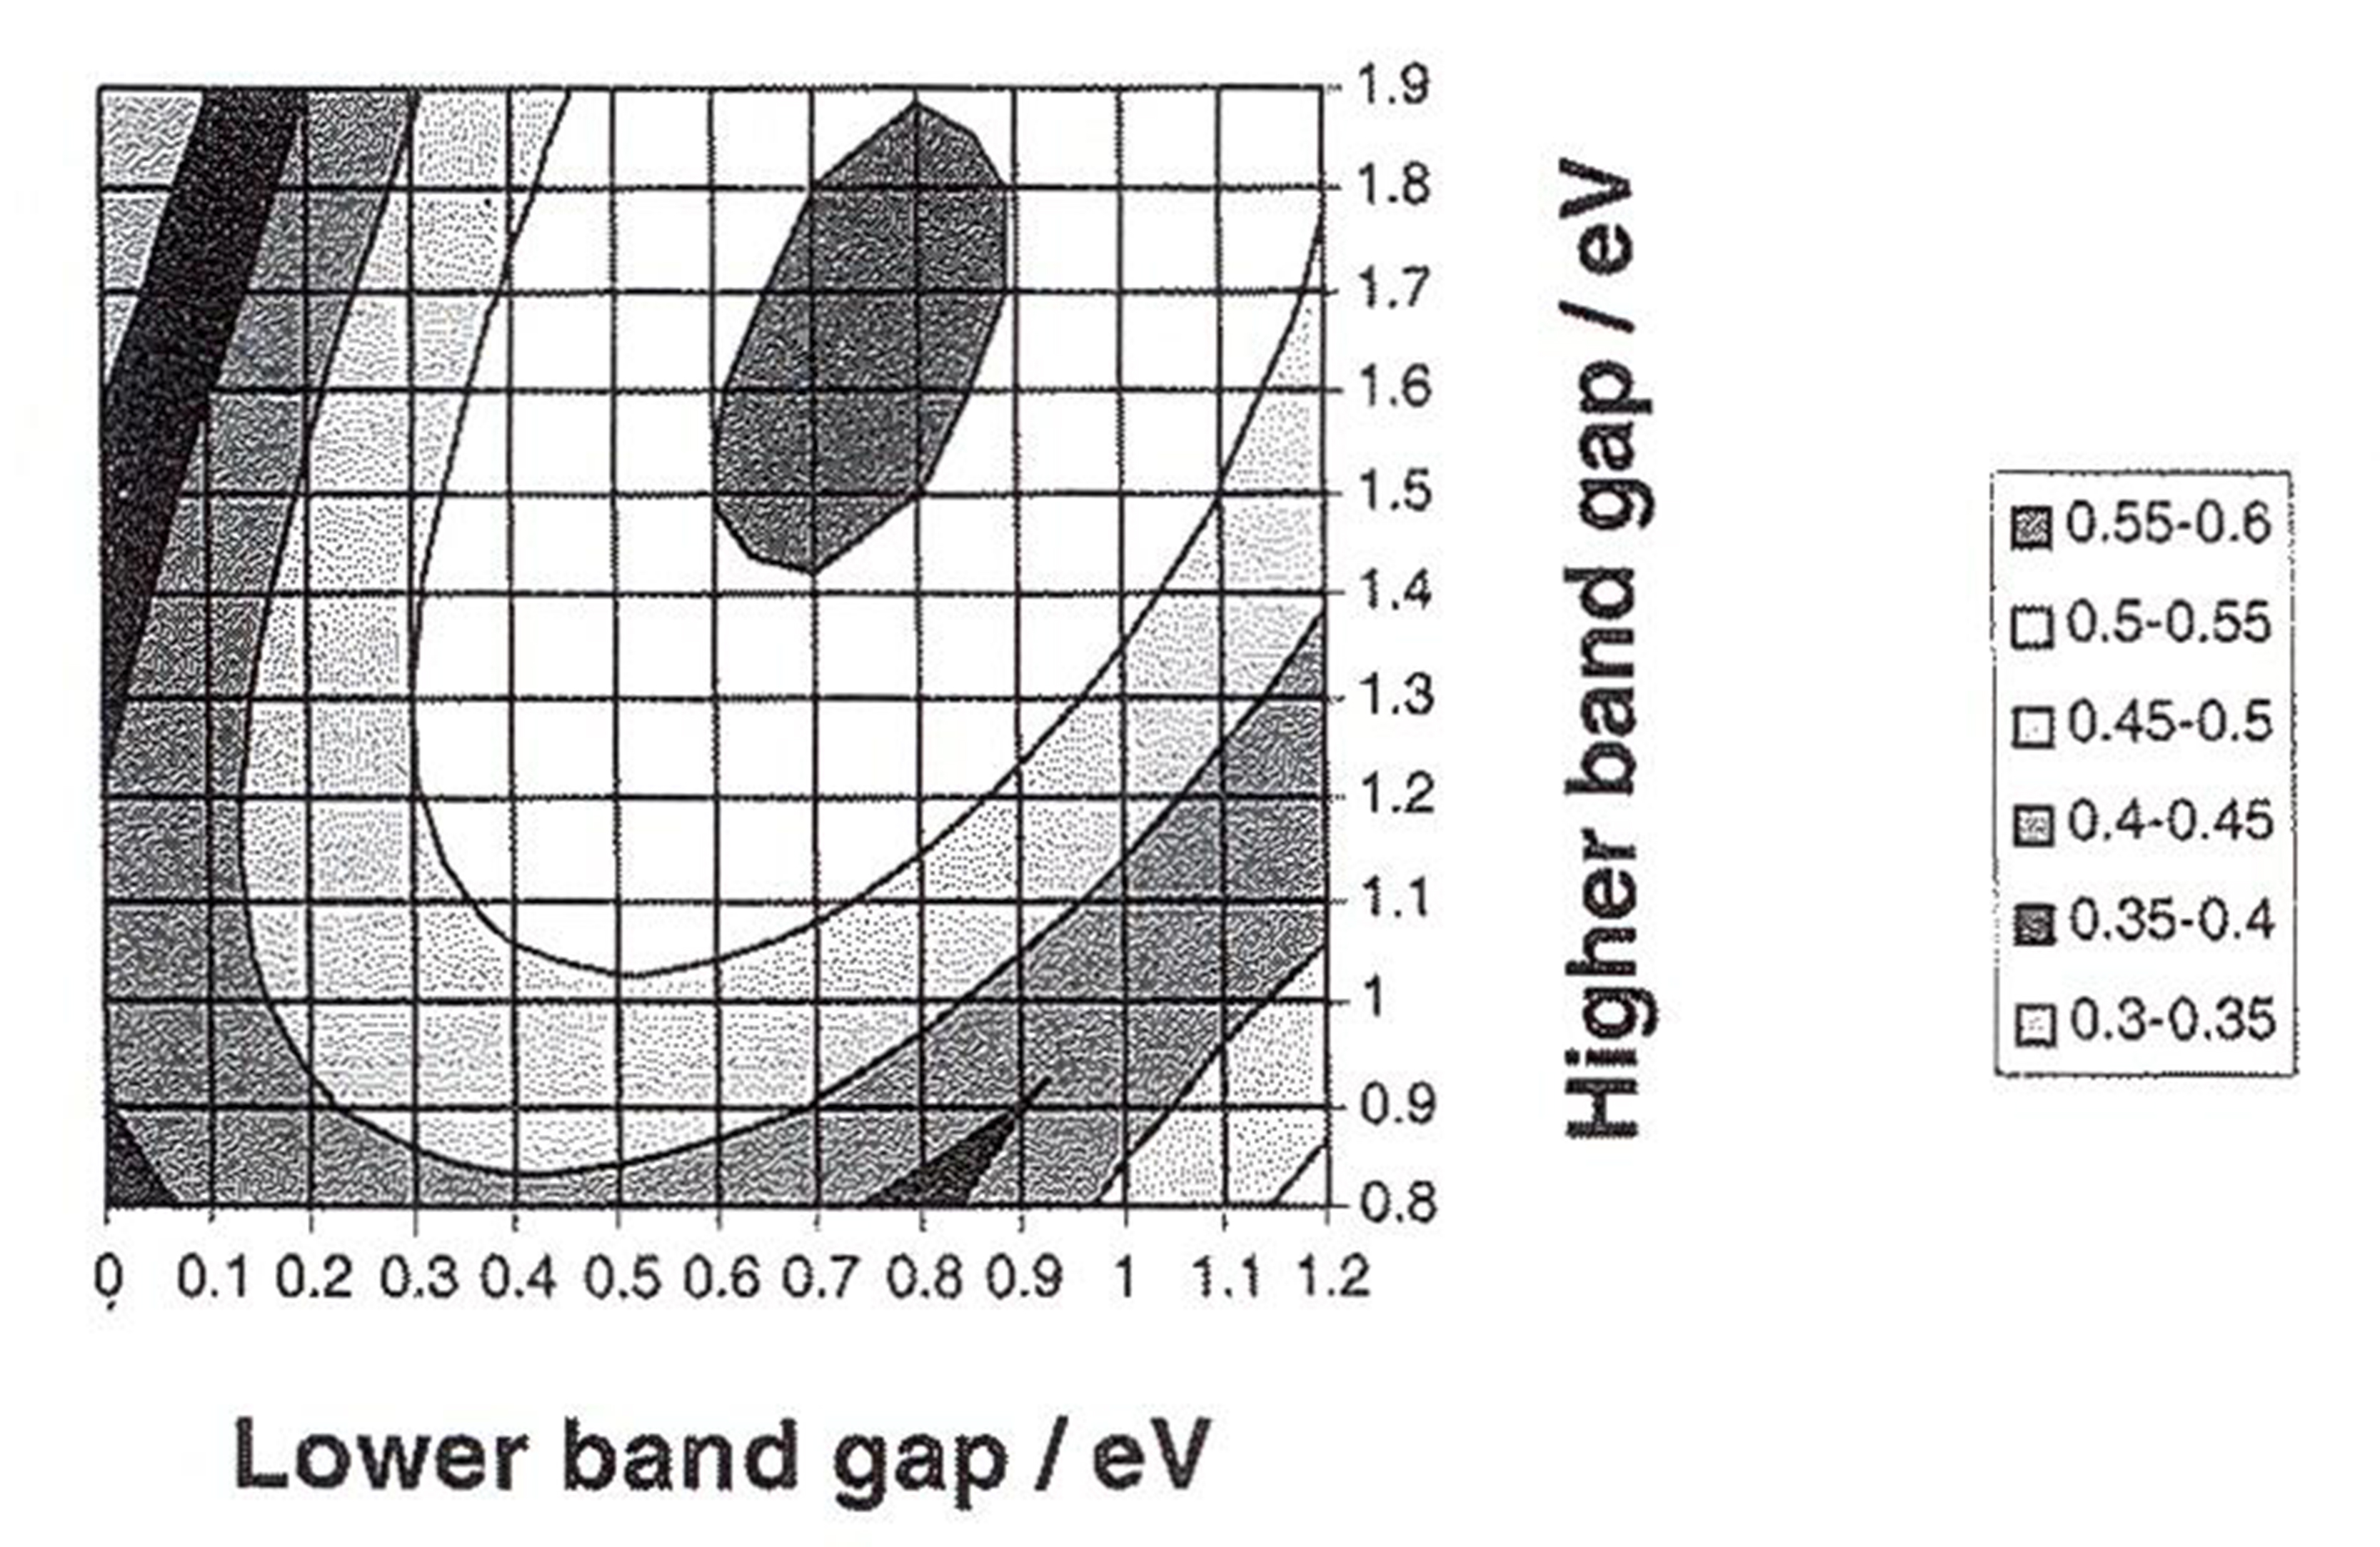 lower band gap /eV